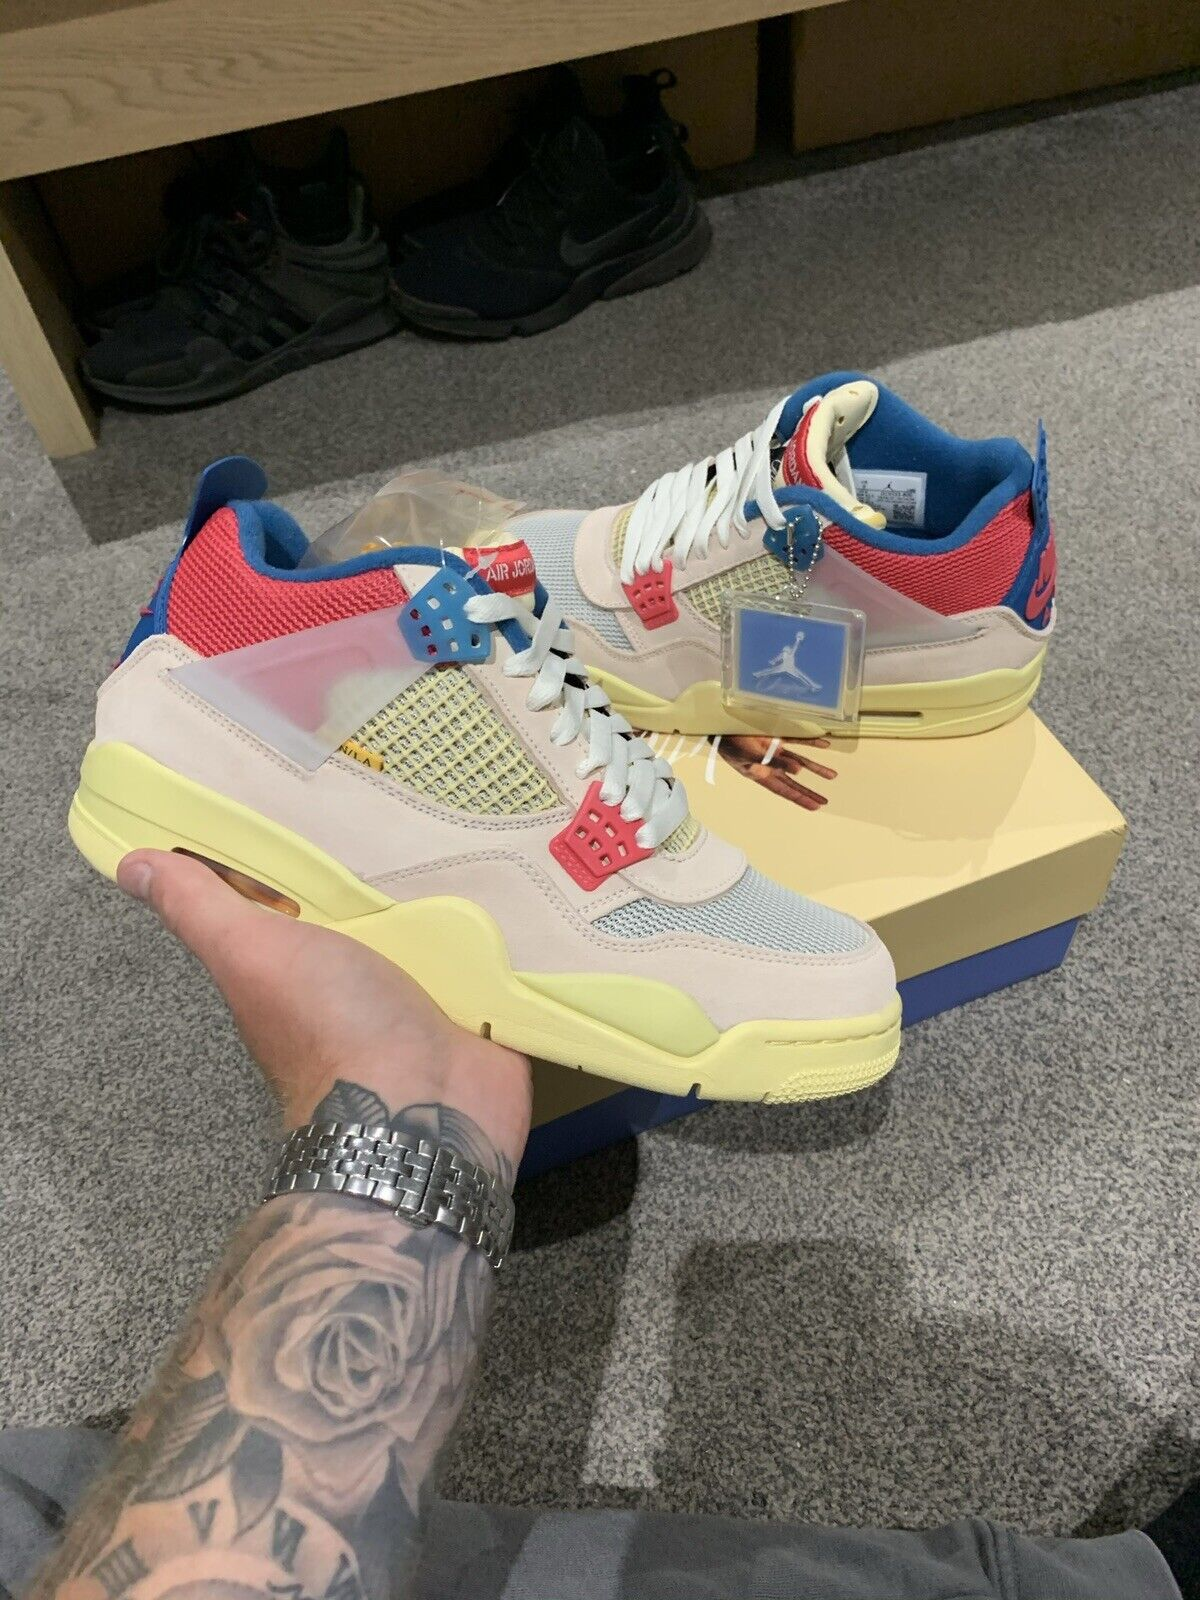 Jordan 4 Union Guava Uk8 Brand New Purchased From Union Online Trusted Seller✅